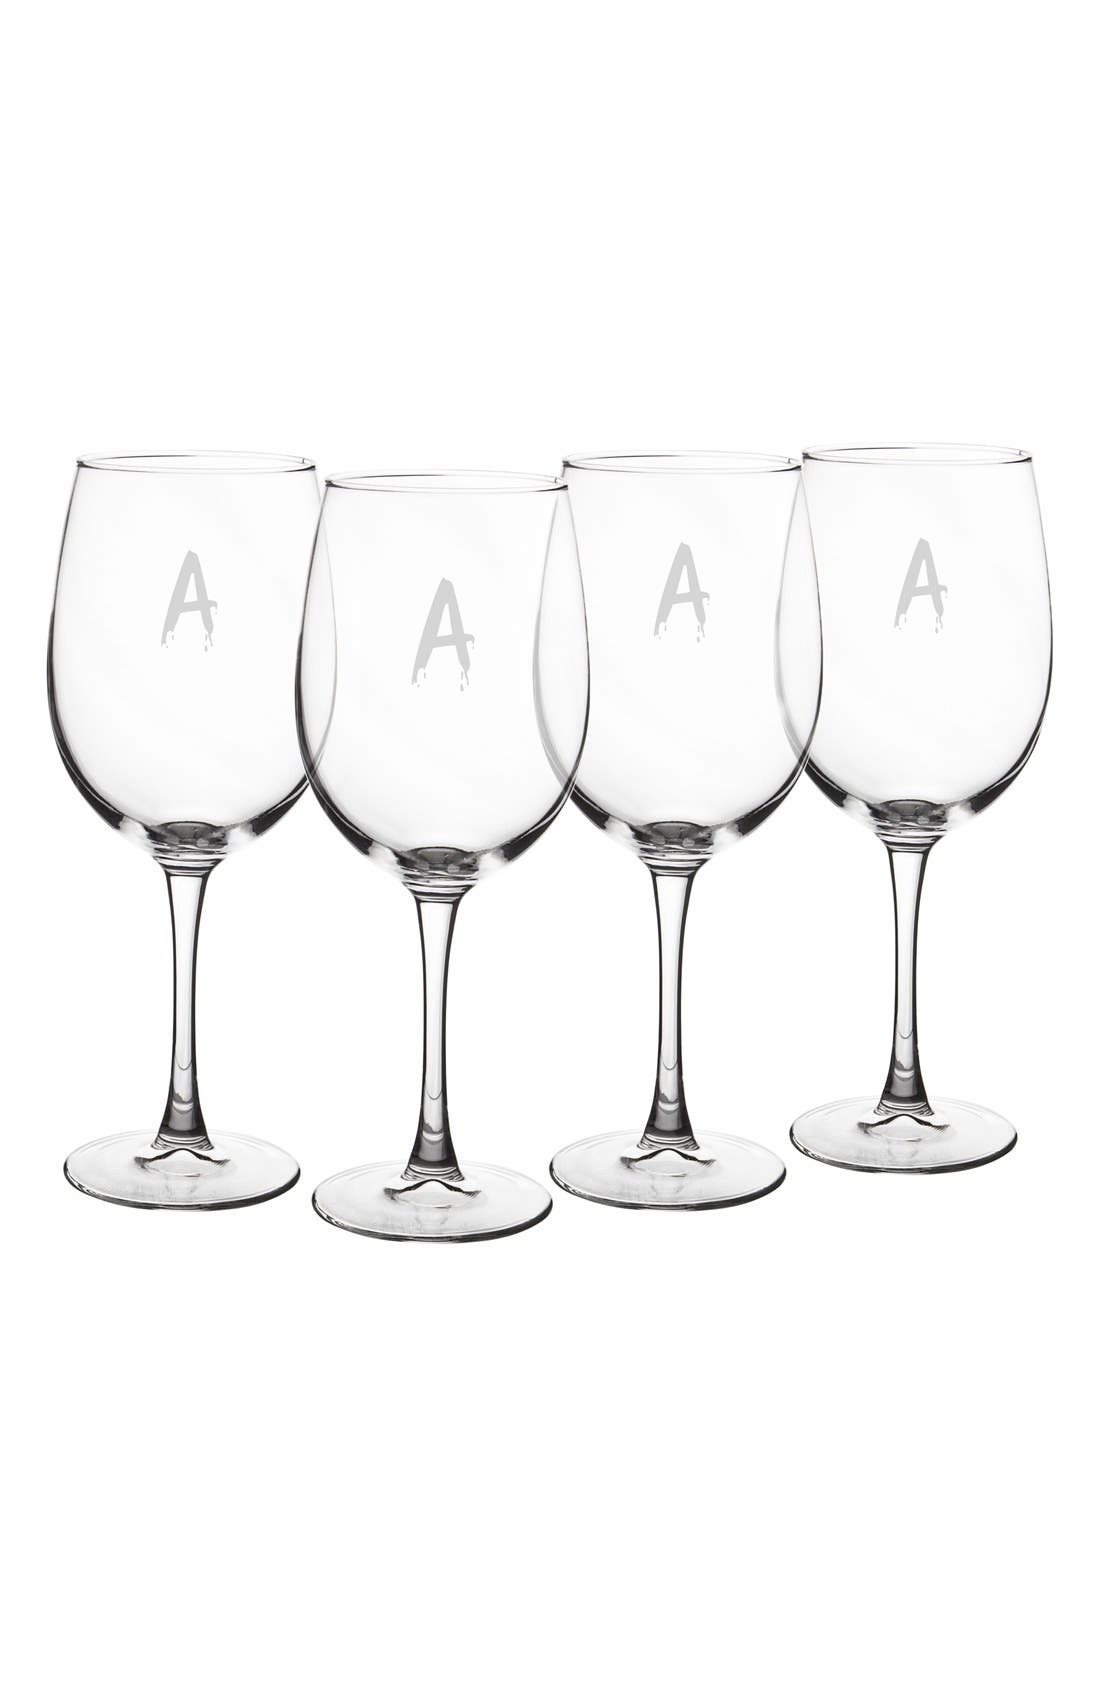 Spooky Monogram Set of 4 White Wine Glasses,                             Main thumbnail 1, color,                             A